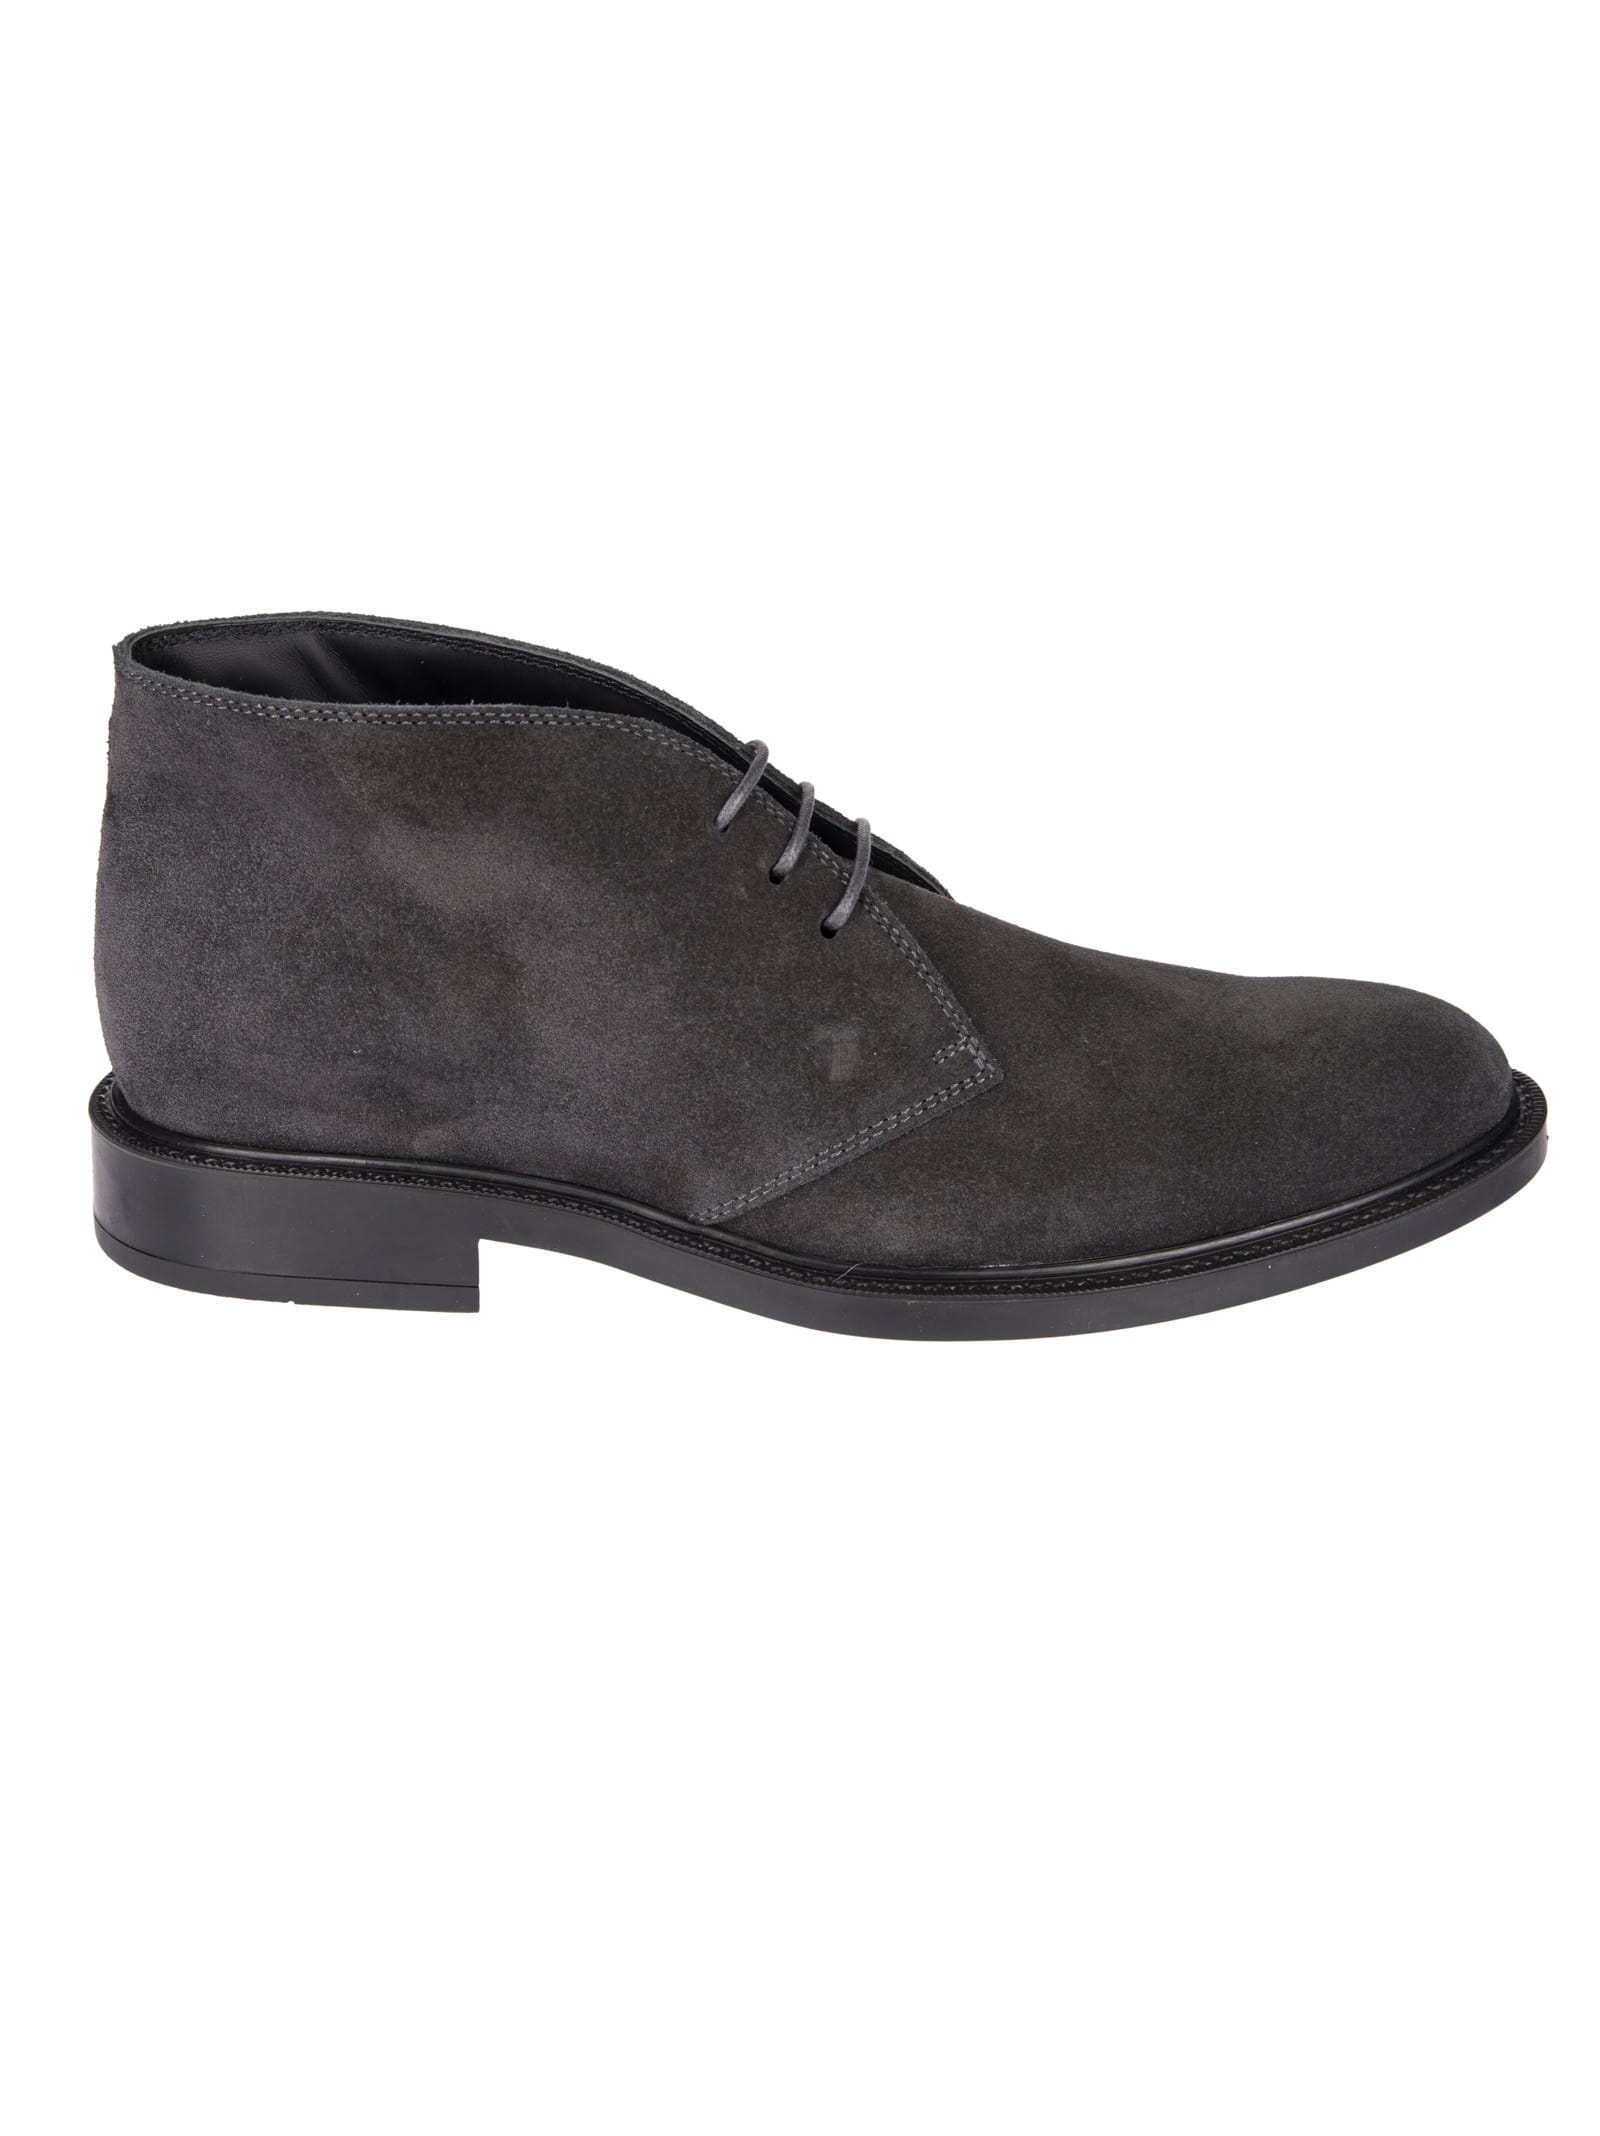 Tods Chukka Lace-up Boots